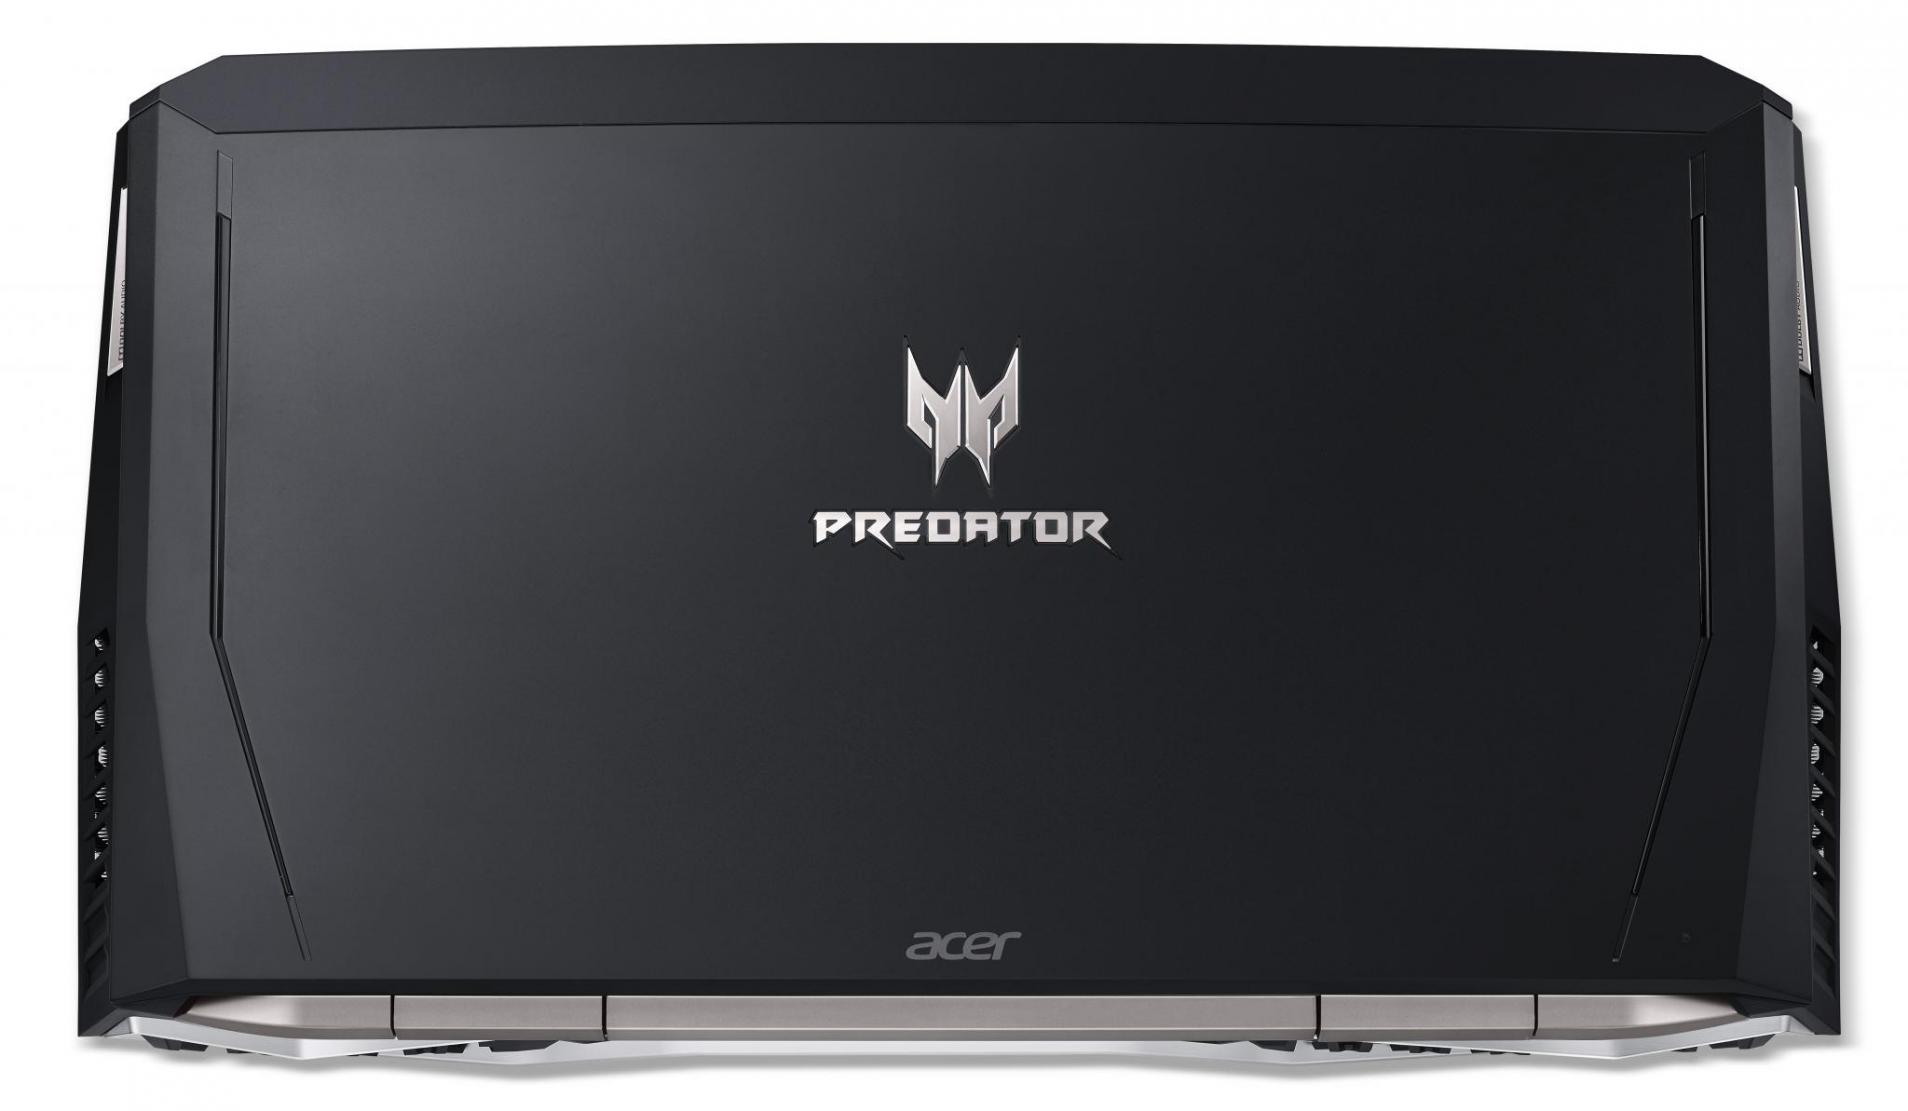 Acer Predator Gaming Notebook